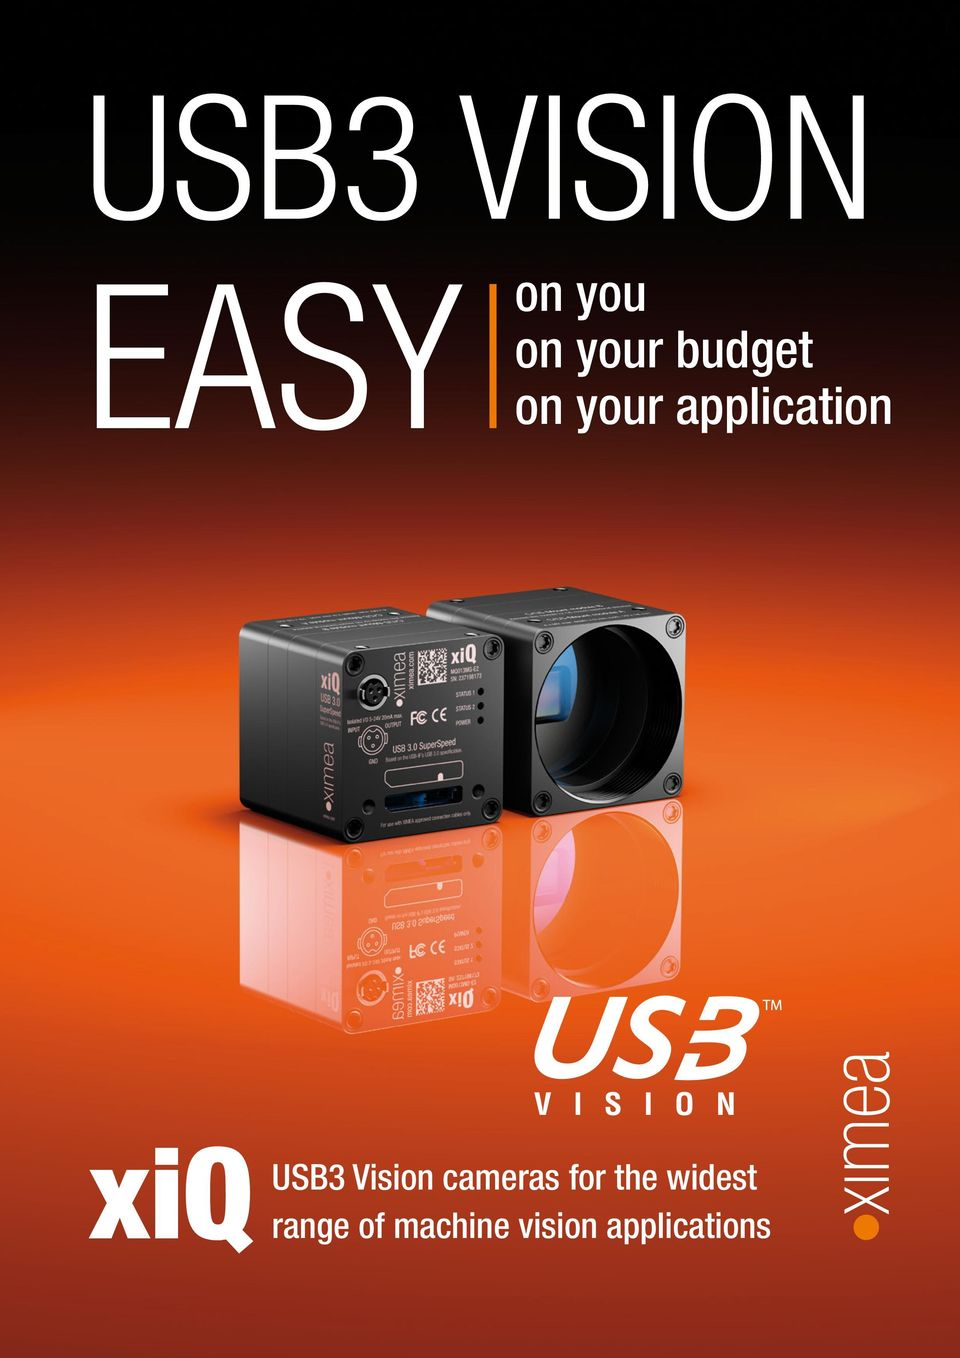 xiq USB3 Vision Cameras easy on you easy on your application easy on